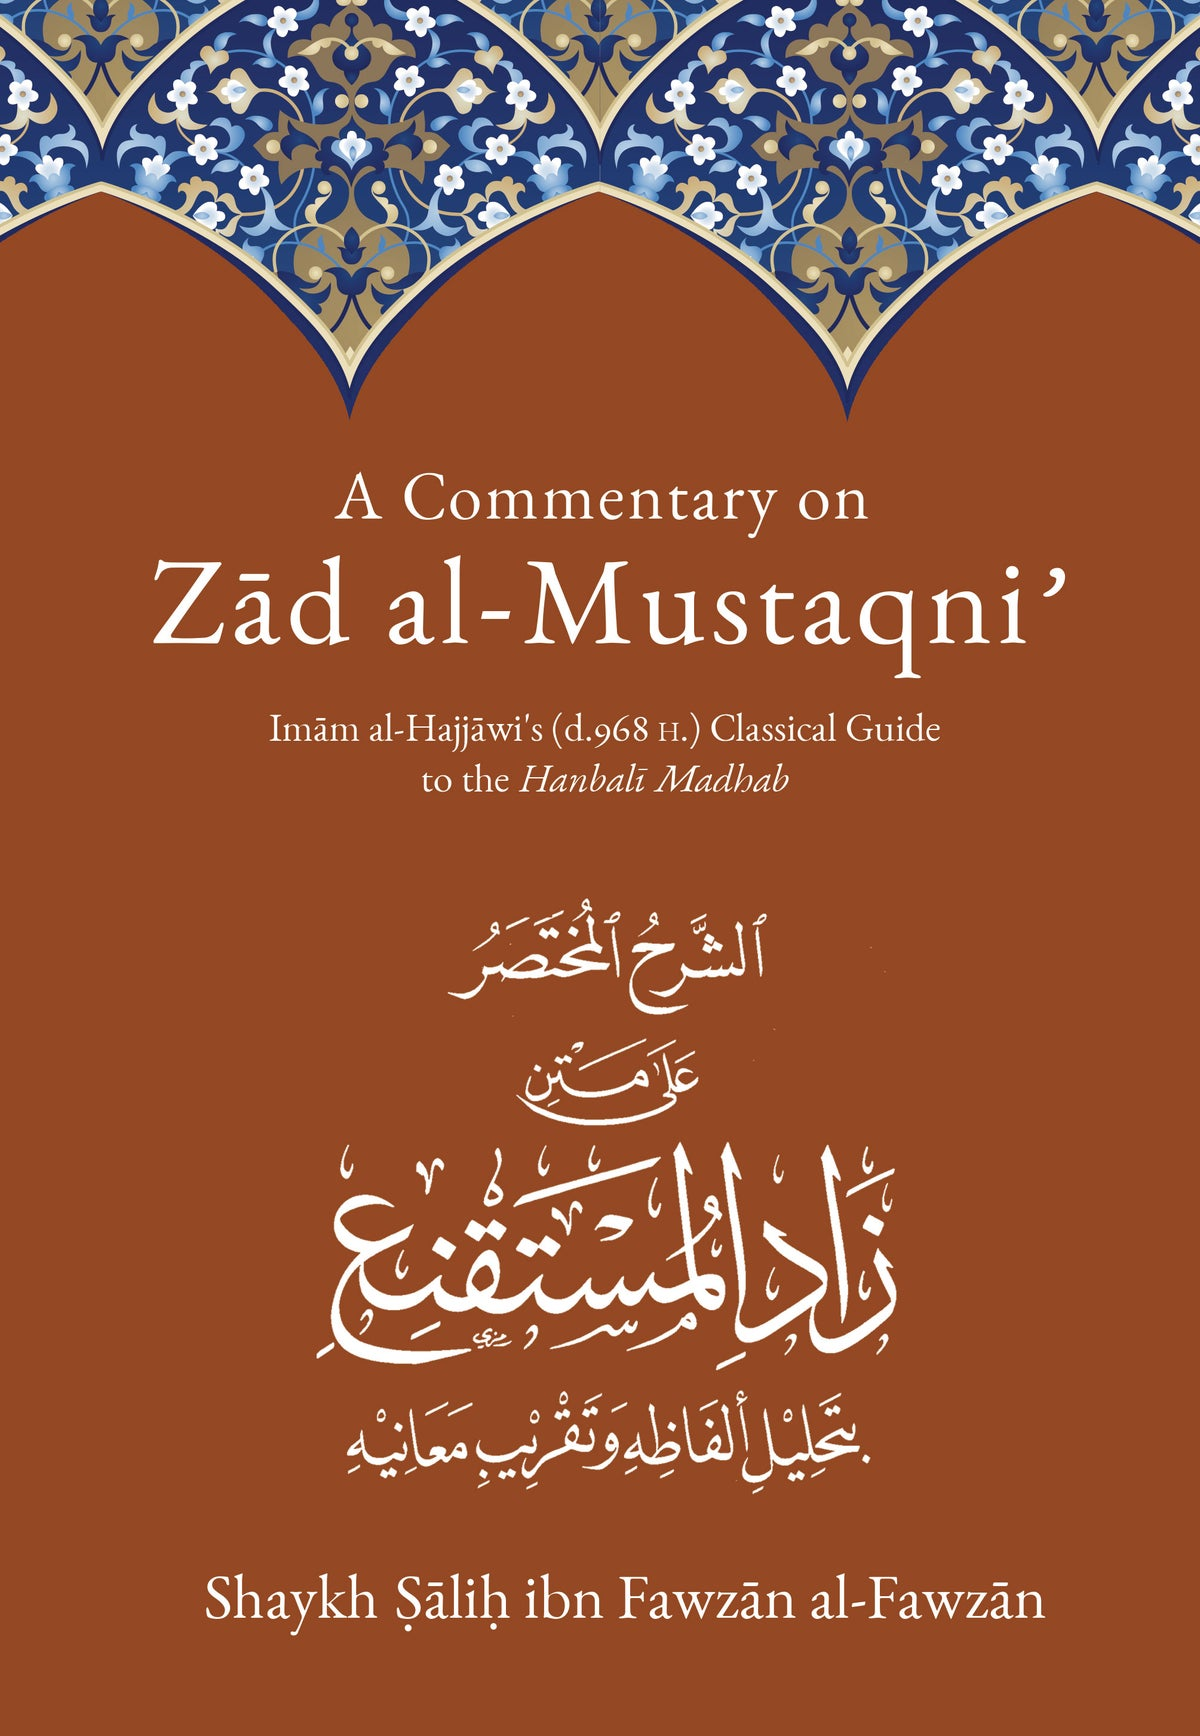 Image of A Commentary on Zad al-Mustaqni' (Vol 1 & 2) by Shaykh Fawzan